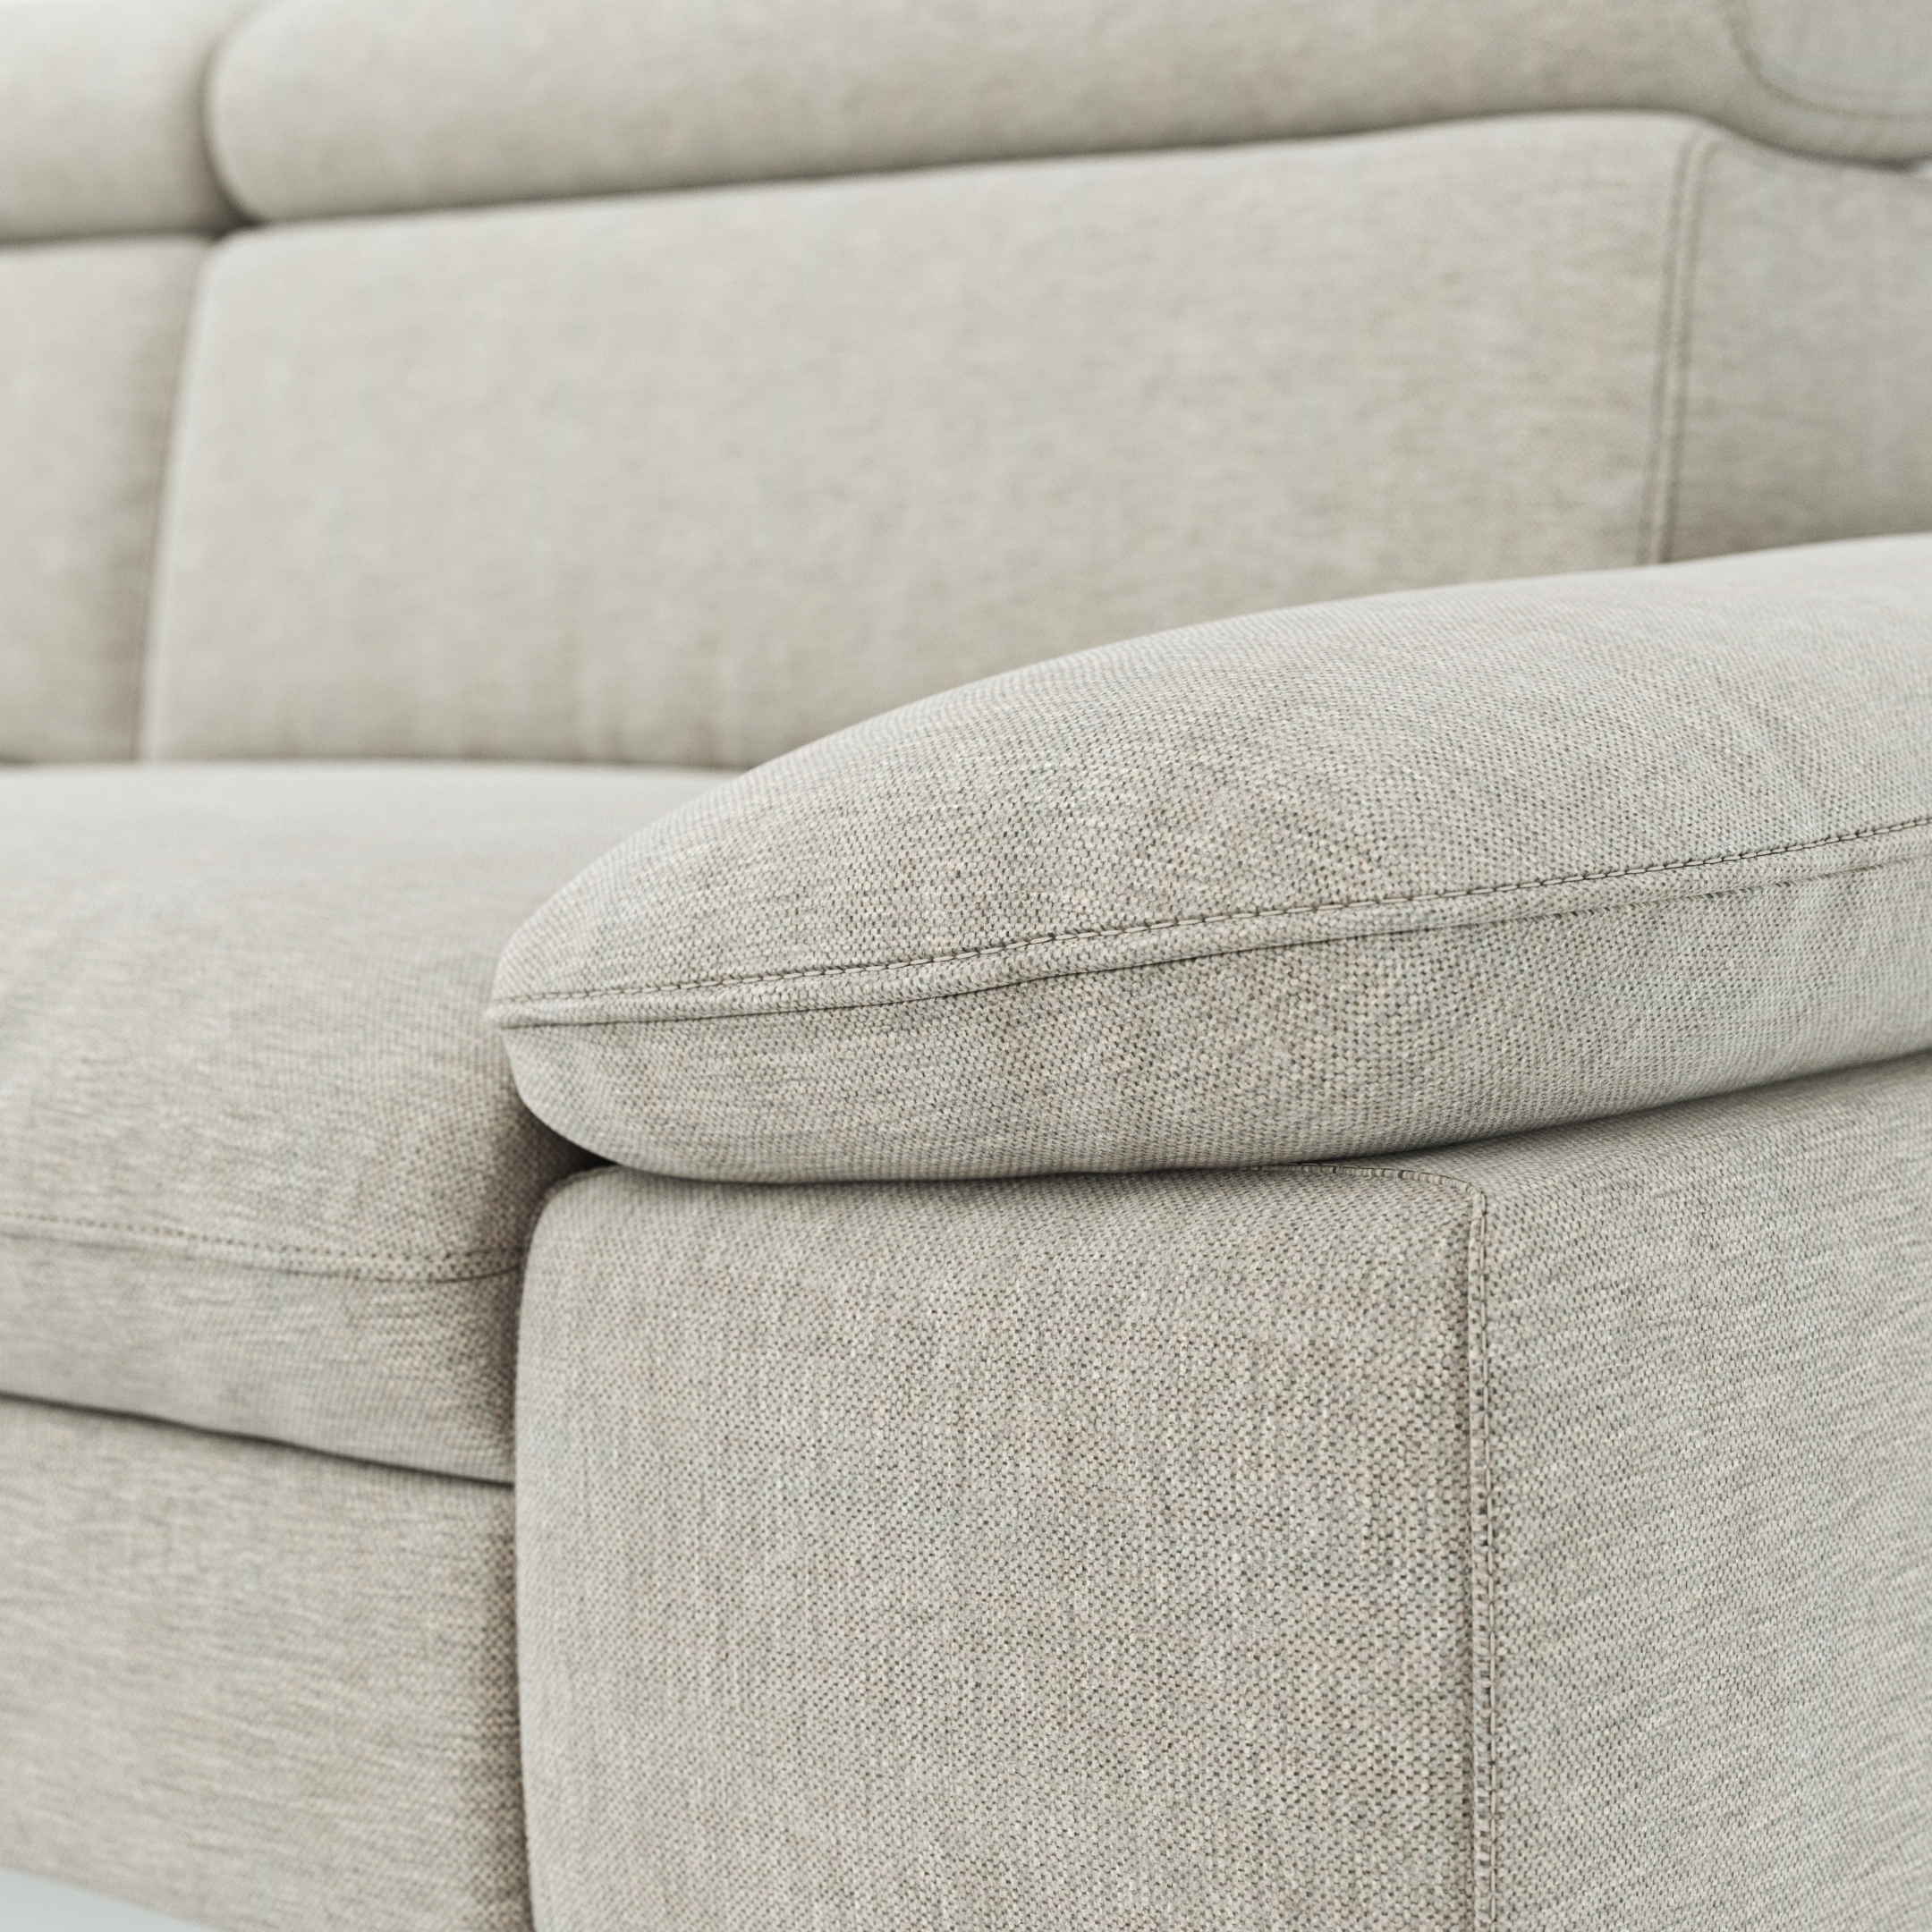 Global Family Ecksofa Felipa detailbild 3 105099 | Homepoet